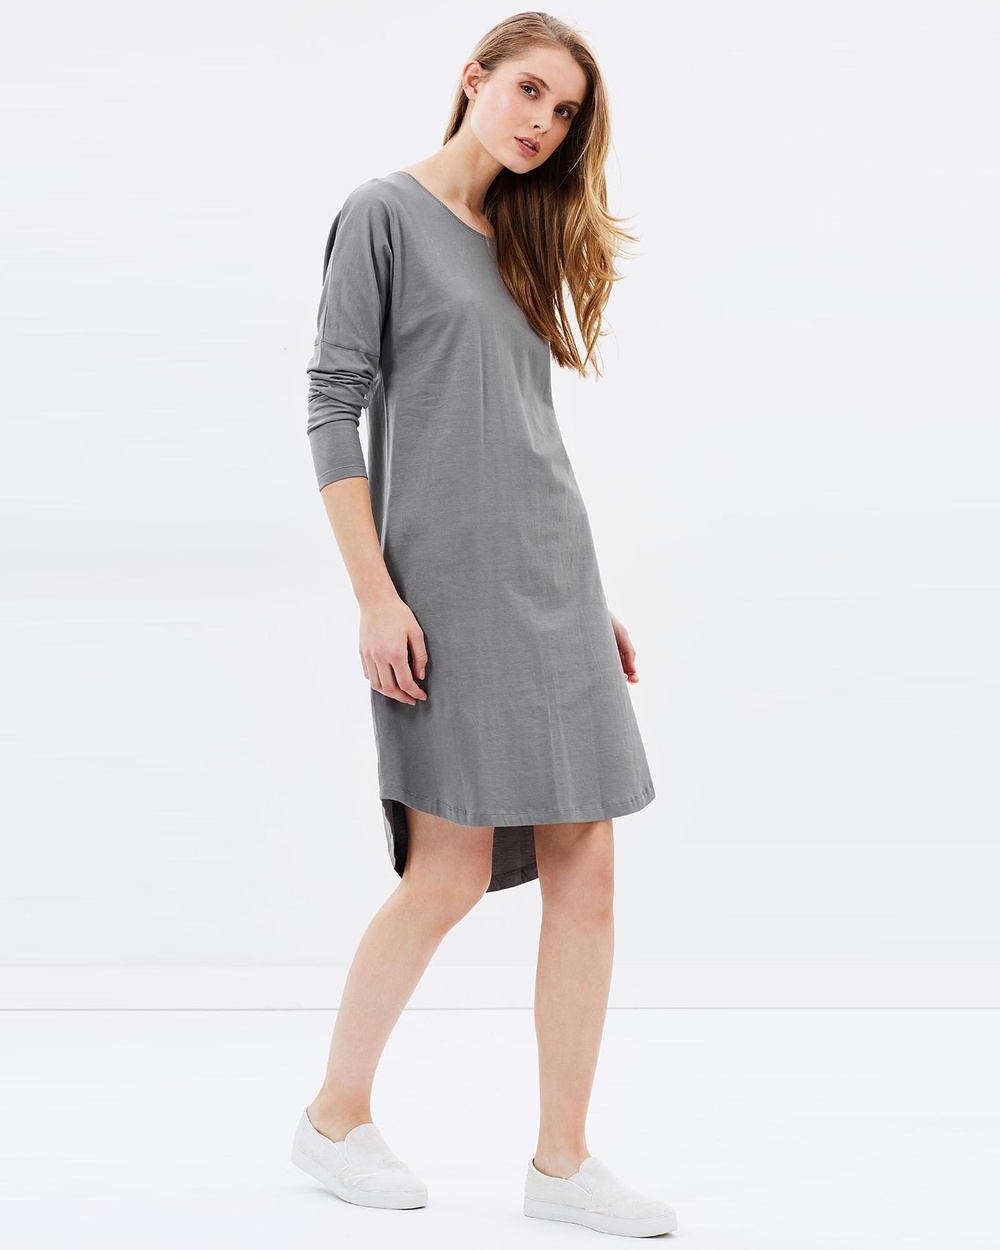 Photo of Cloth & Co. Charcoal Organic Cotton Long Sleeve Dress - buy Cloth & Co. dresses on sale online